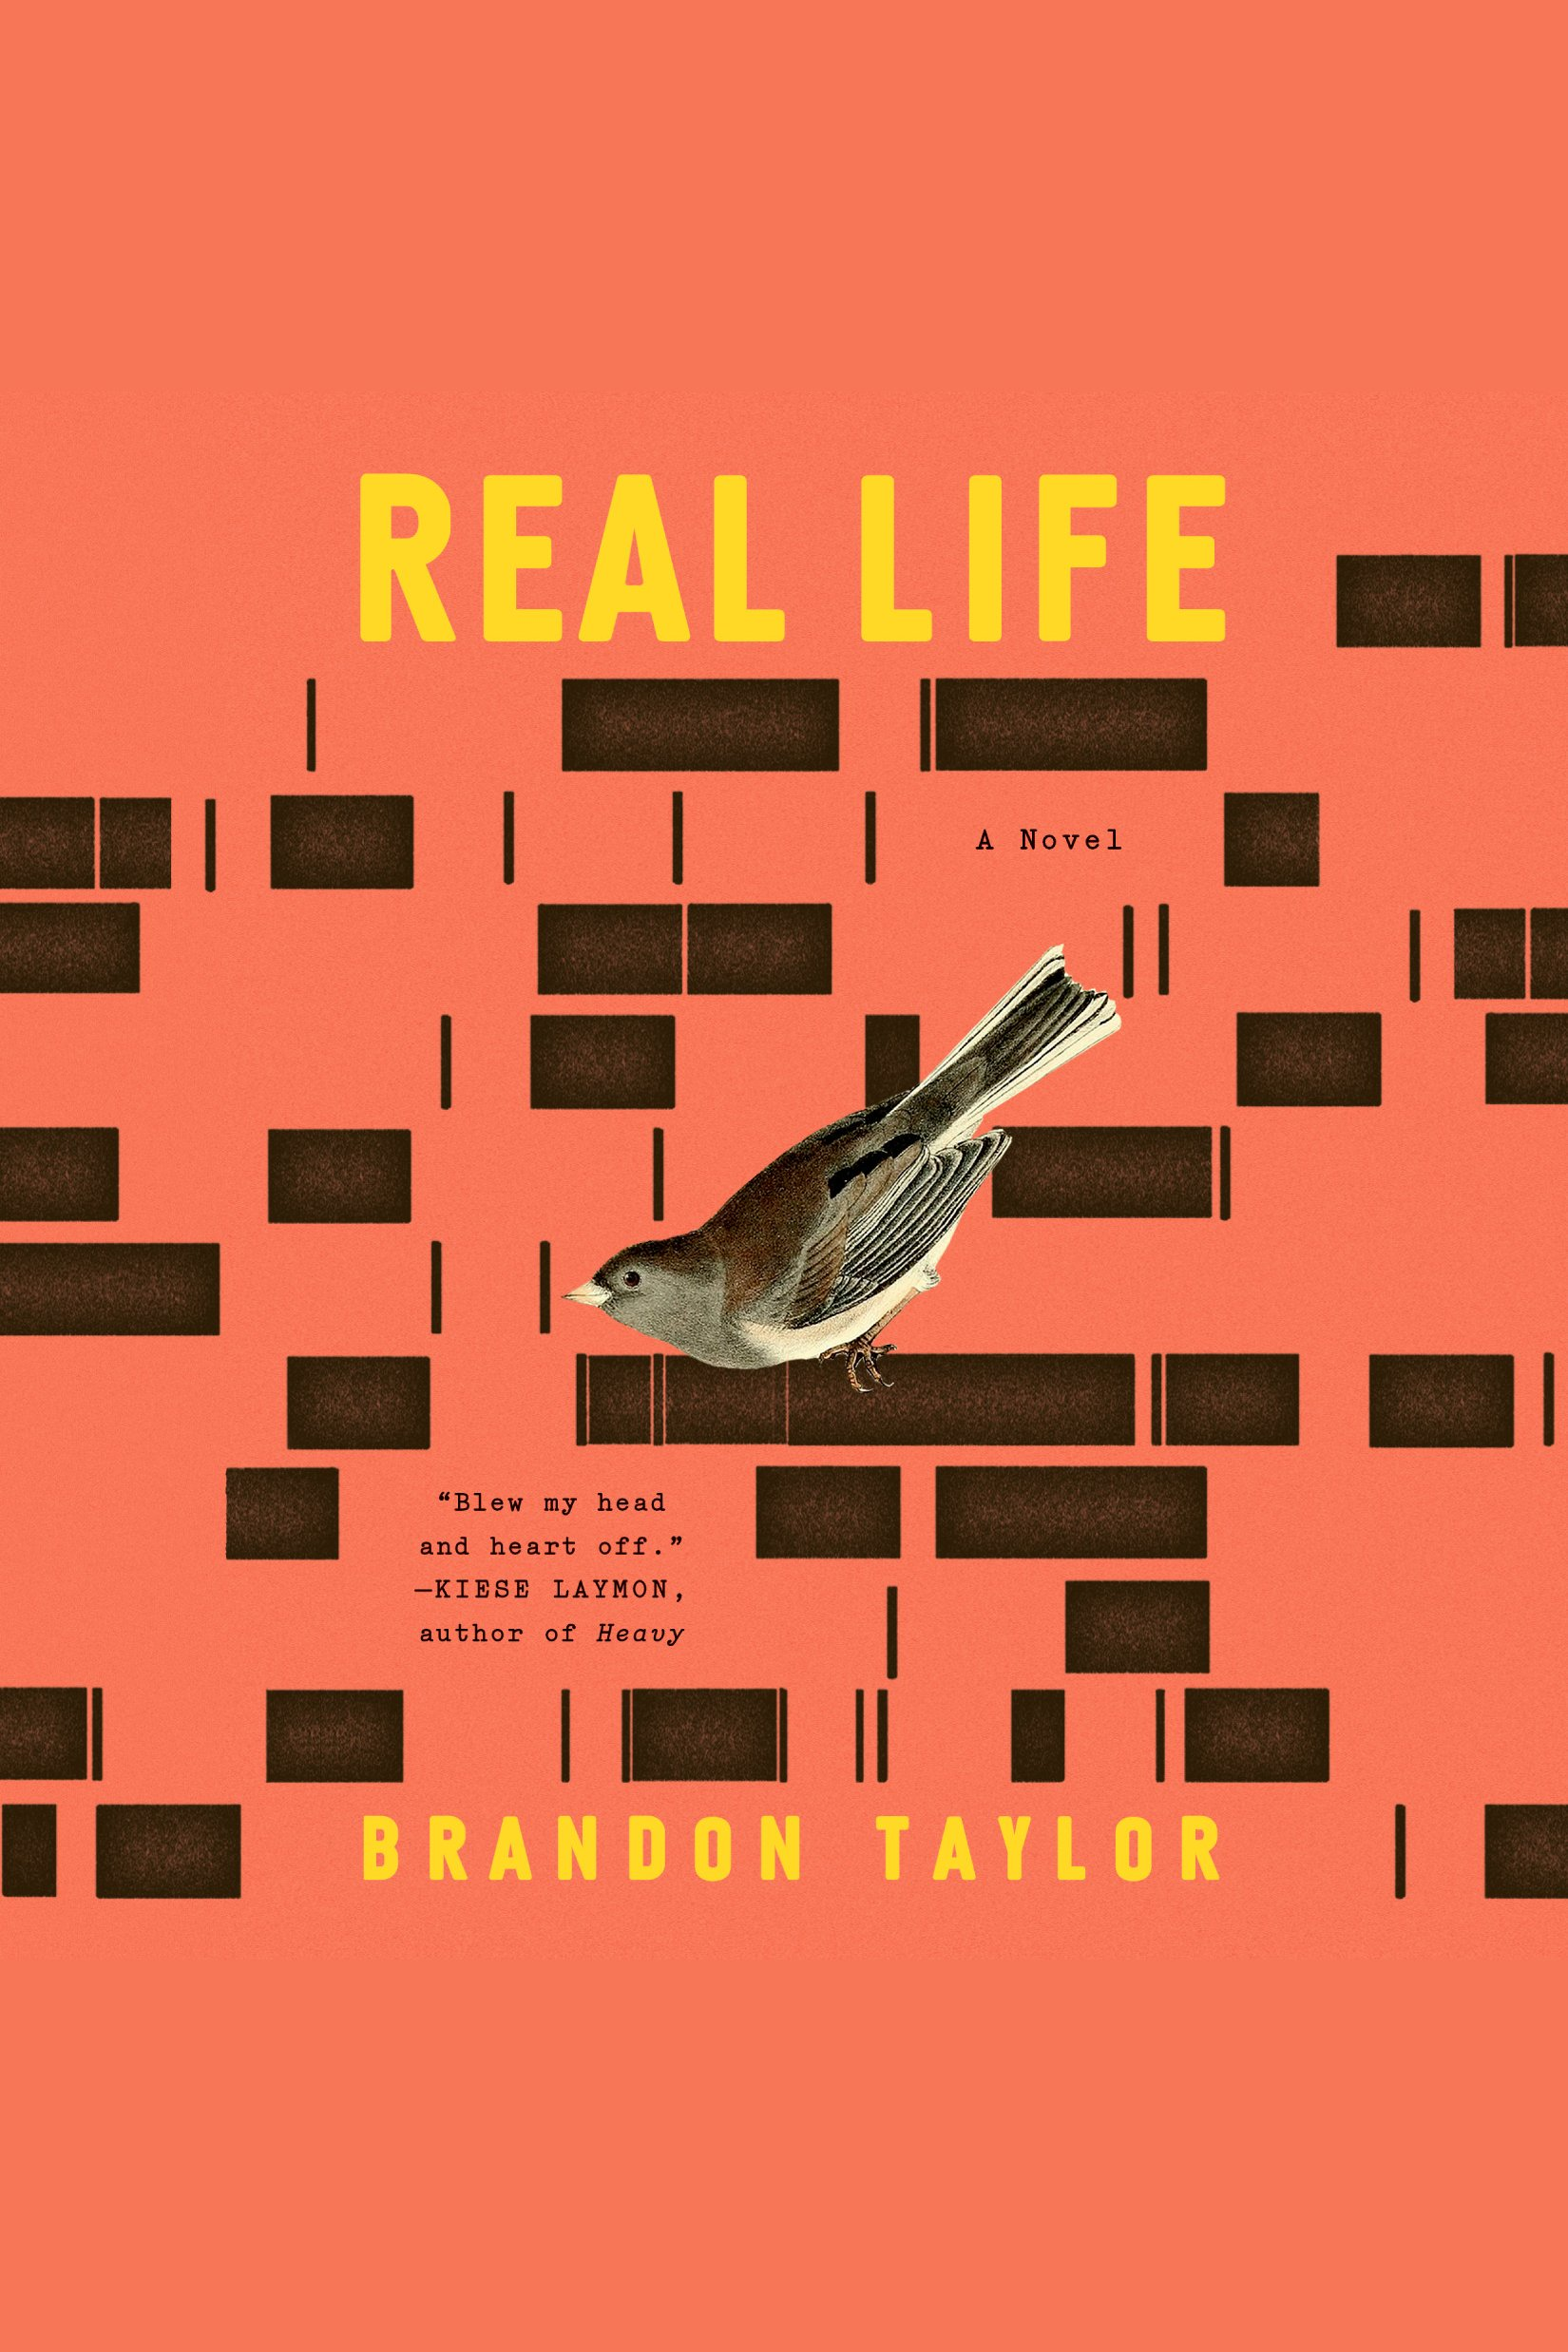 Real Life [electronic resource] : A Novel